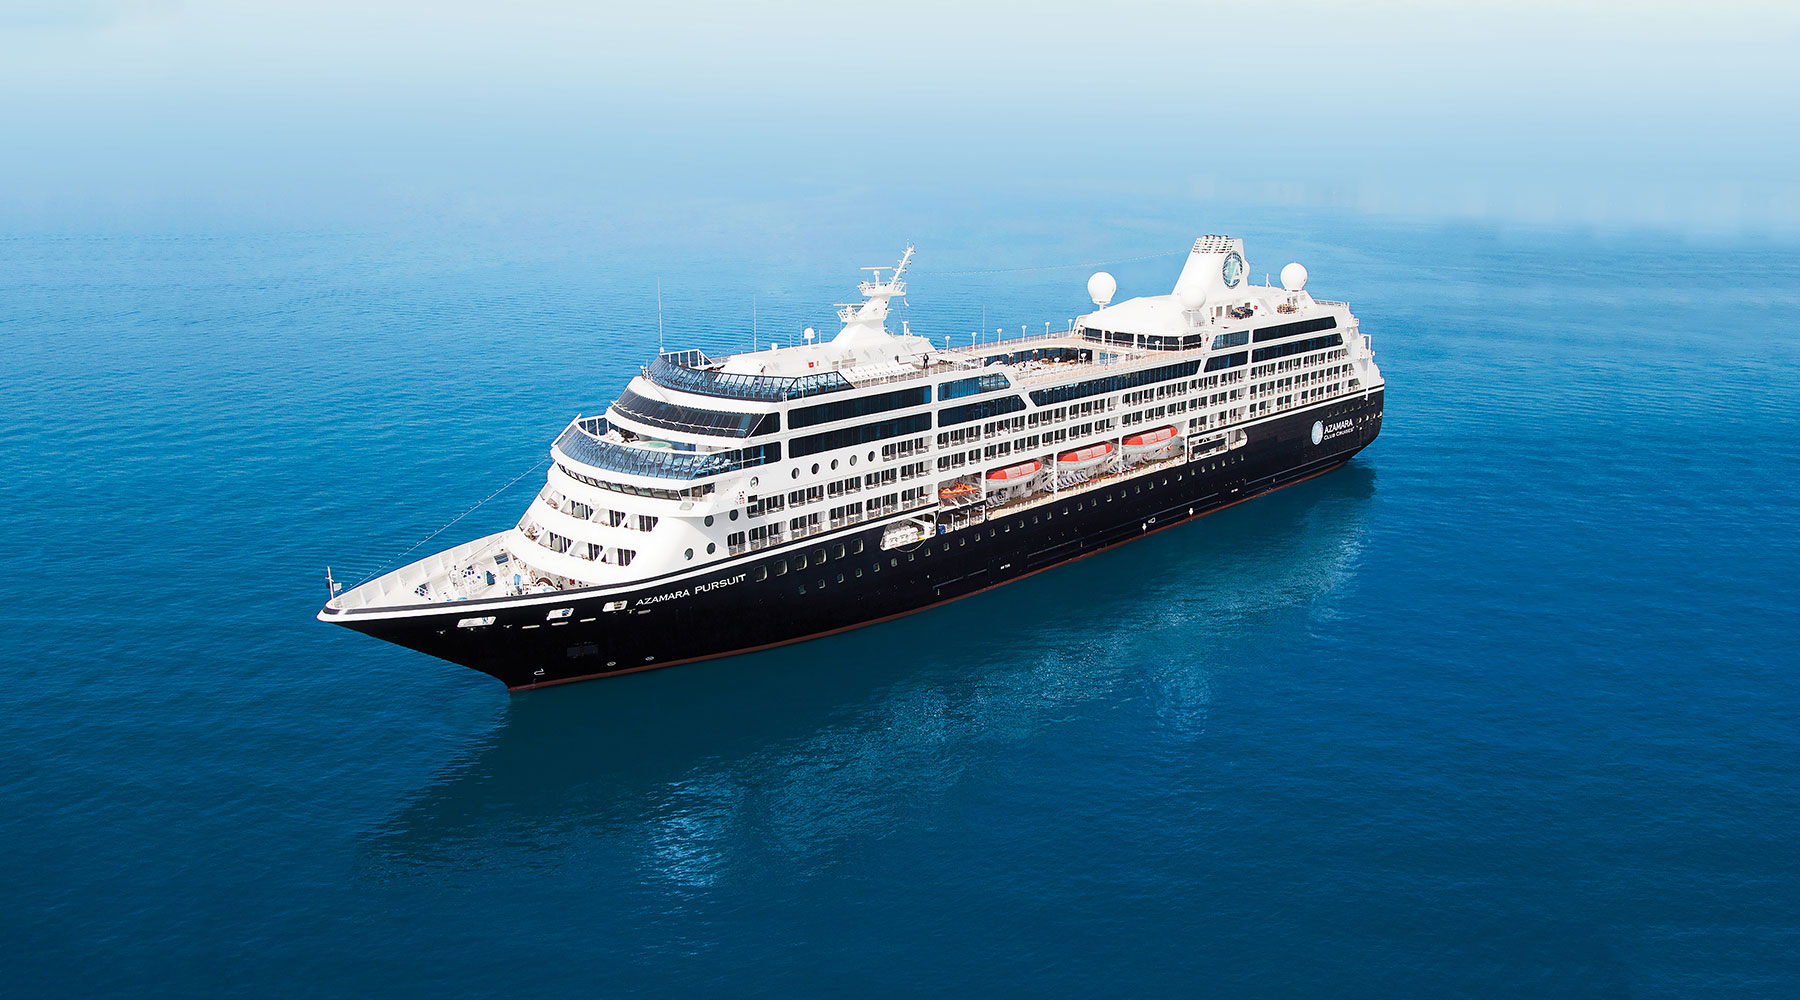 But Azamara Pursuit will take your adventure to the next level by bringing guests the luxury experience that they have come to know and love with Azamara Club Cruises.